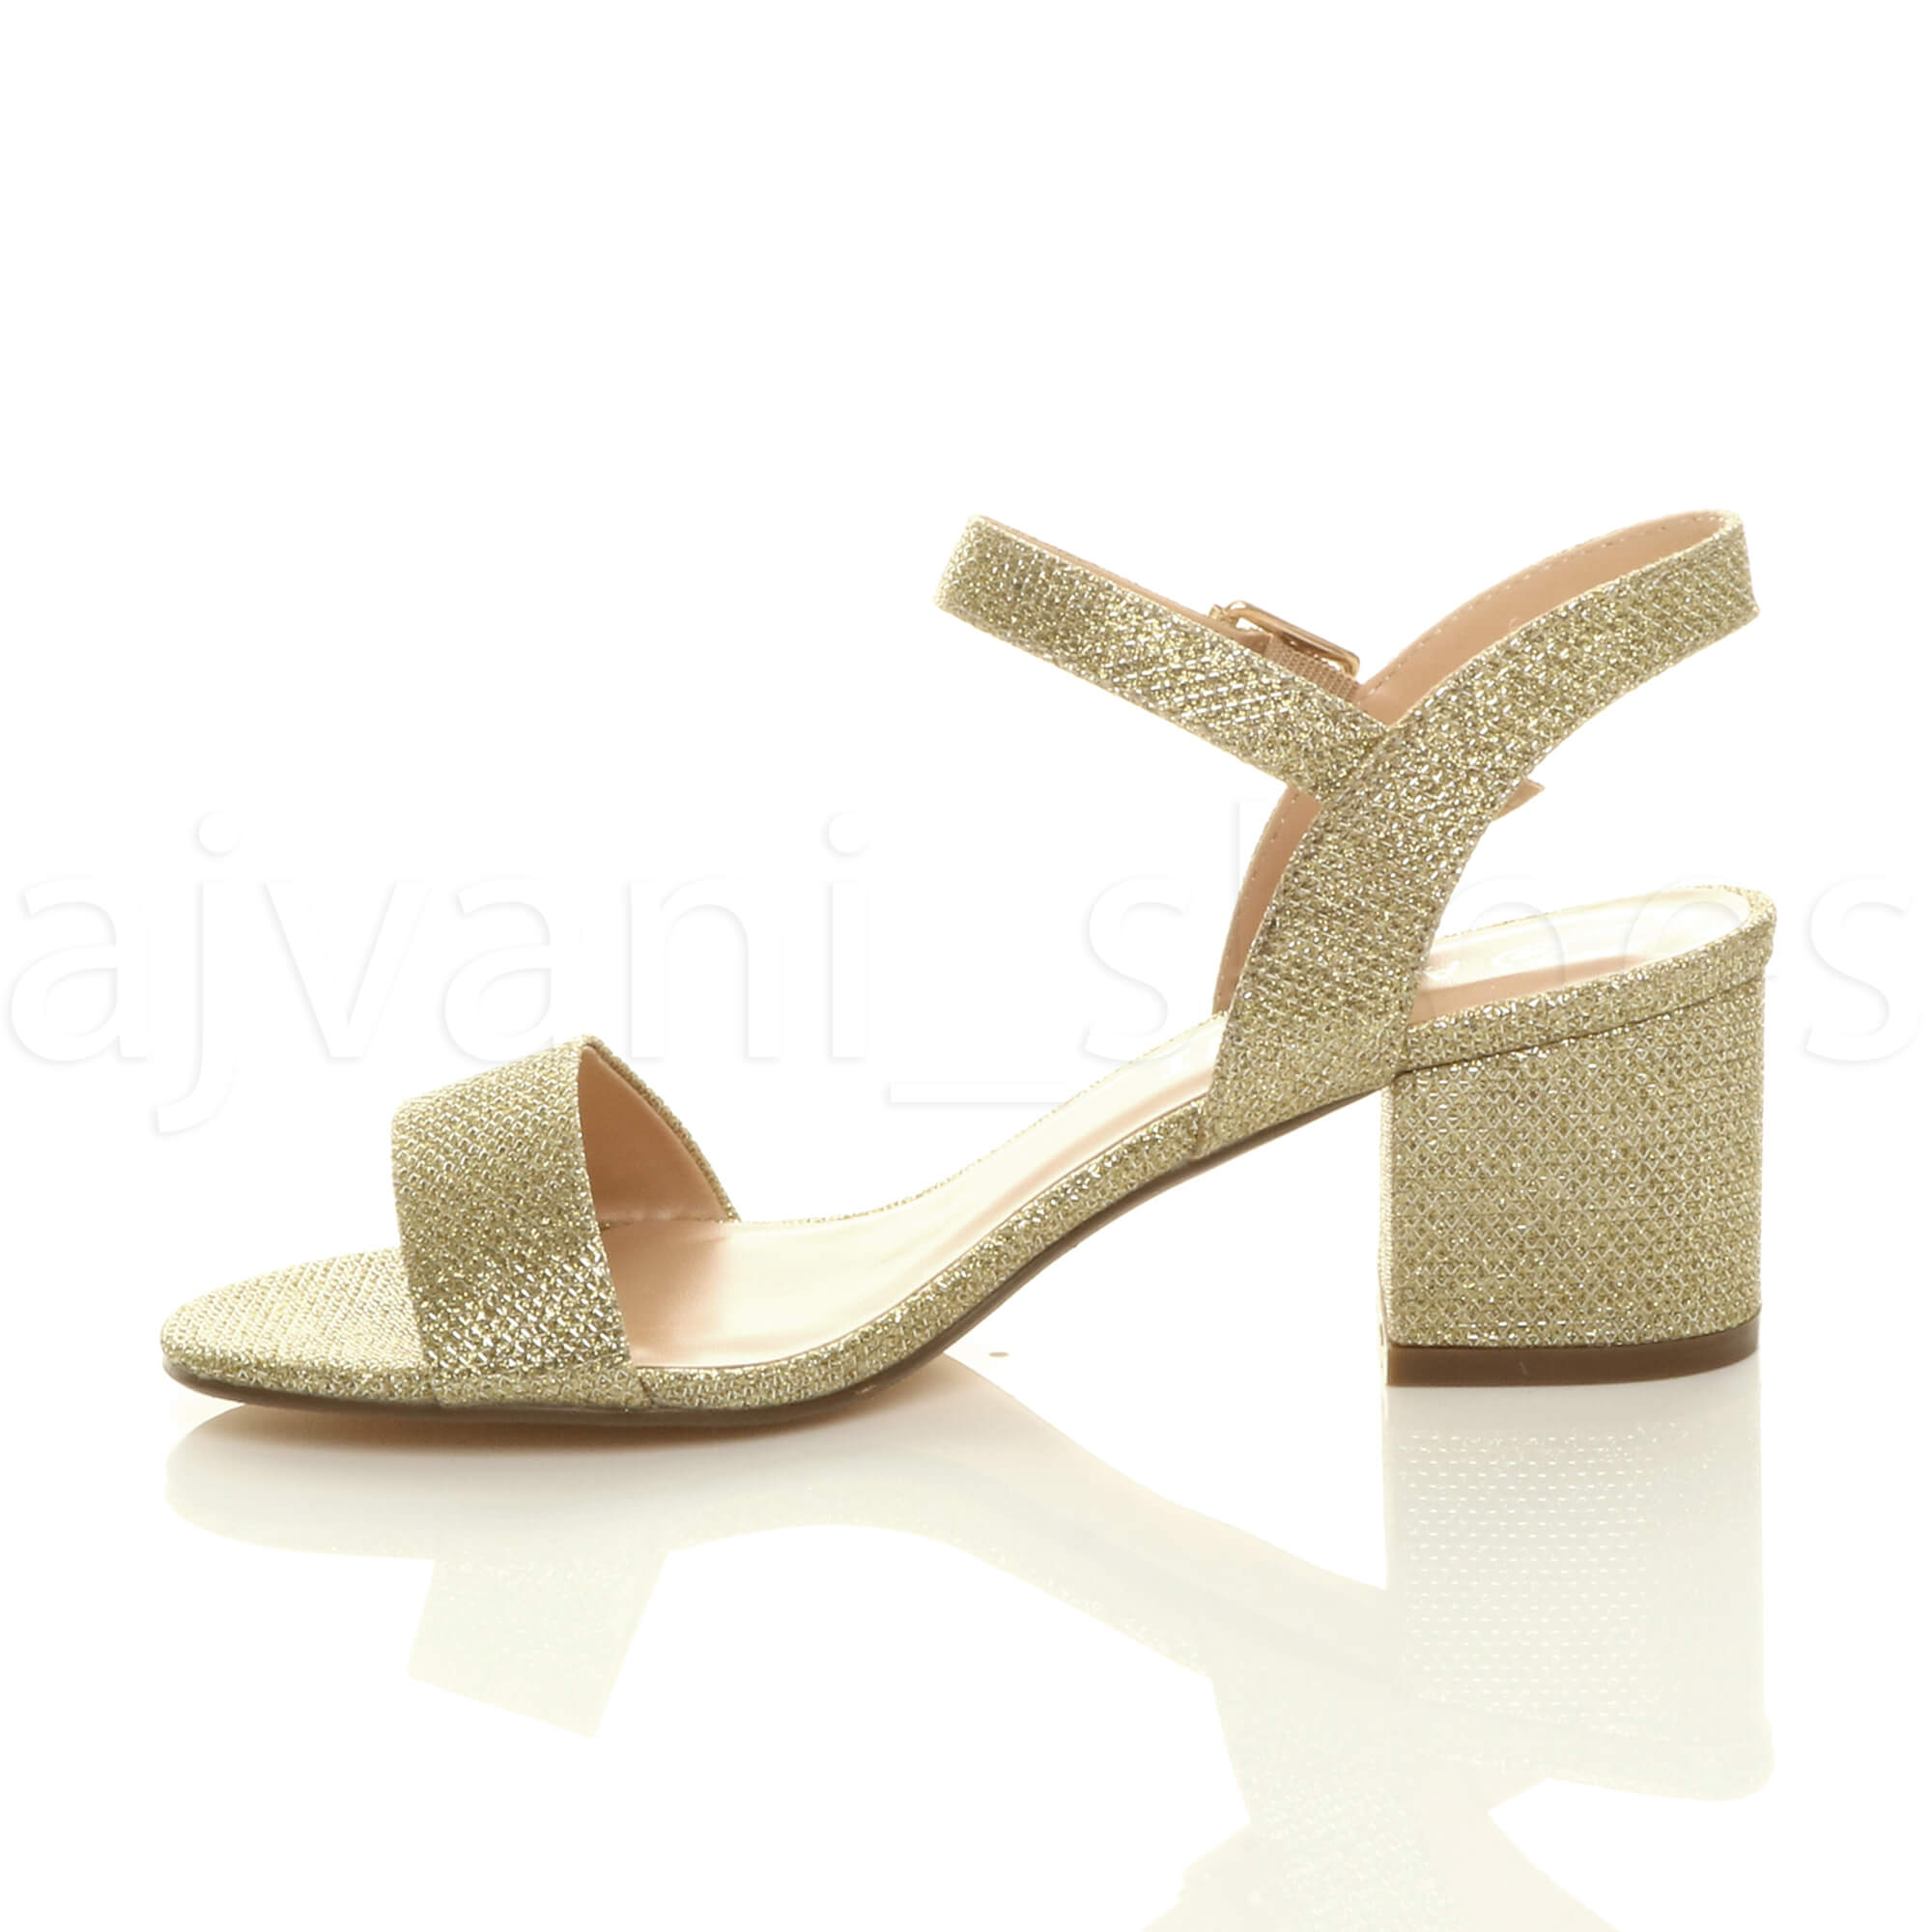 WOMENS-LADIES-MID-LOW-BLOCK-HEEL-PEEP-TOE-ANKLE-STRAP-STRAPPY-PARTY-SANDALS-SIZE thumbnail 52